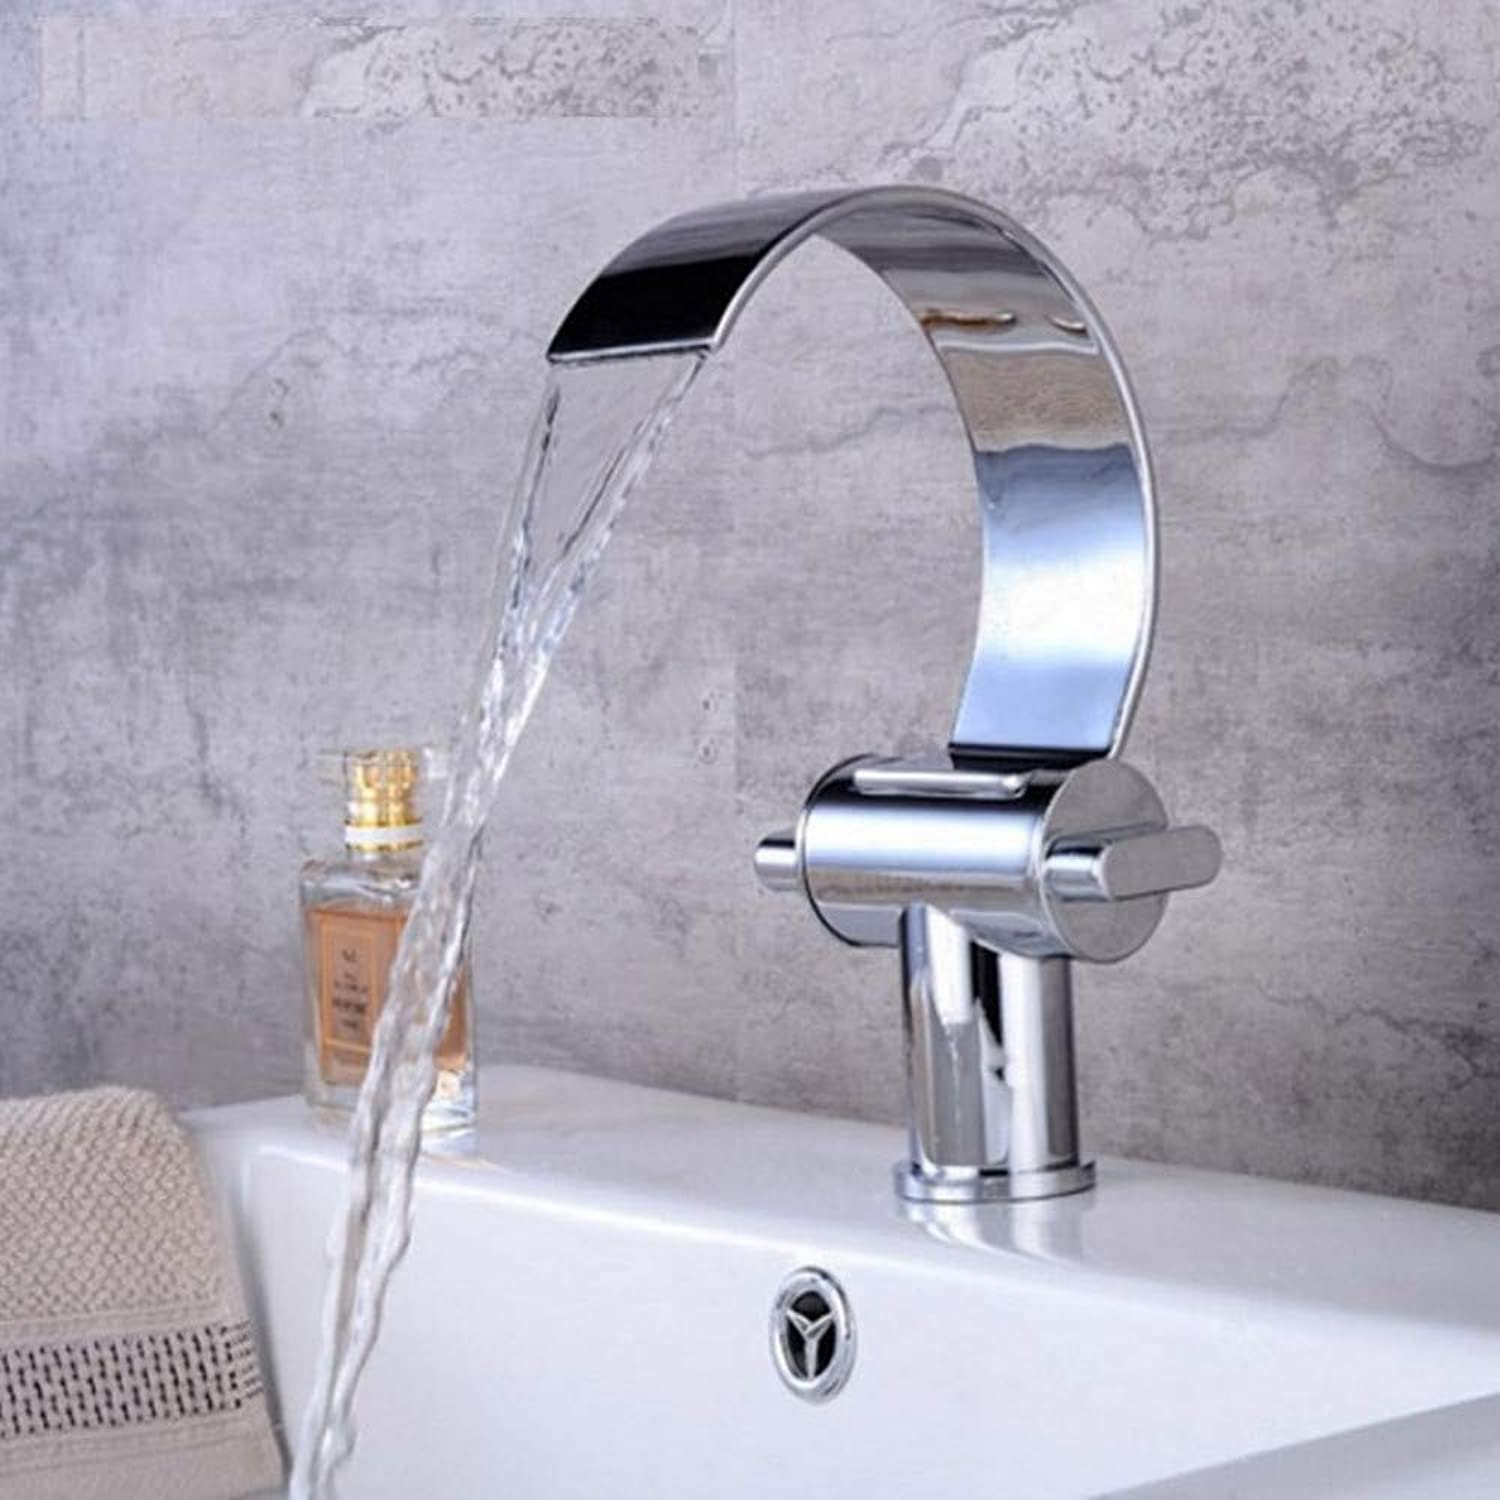 Dwthh New Style Brass Deck Mount Bathroom Faucets Vanity Vessel Sinks Mixer Waterfall Faucet Tap